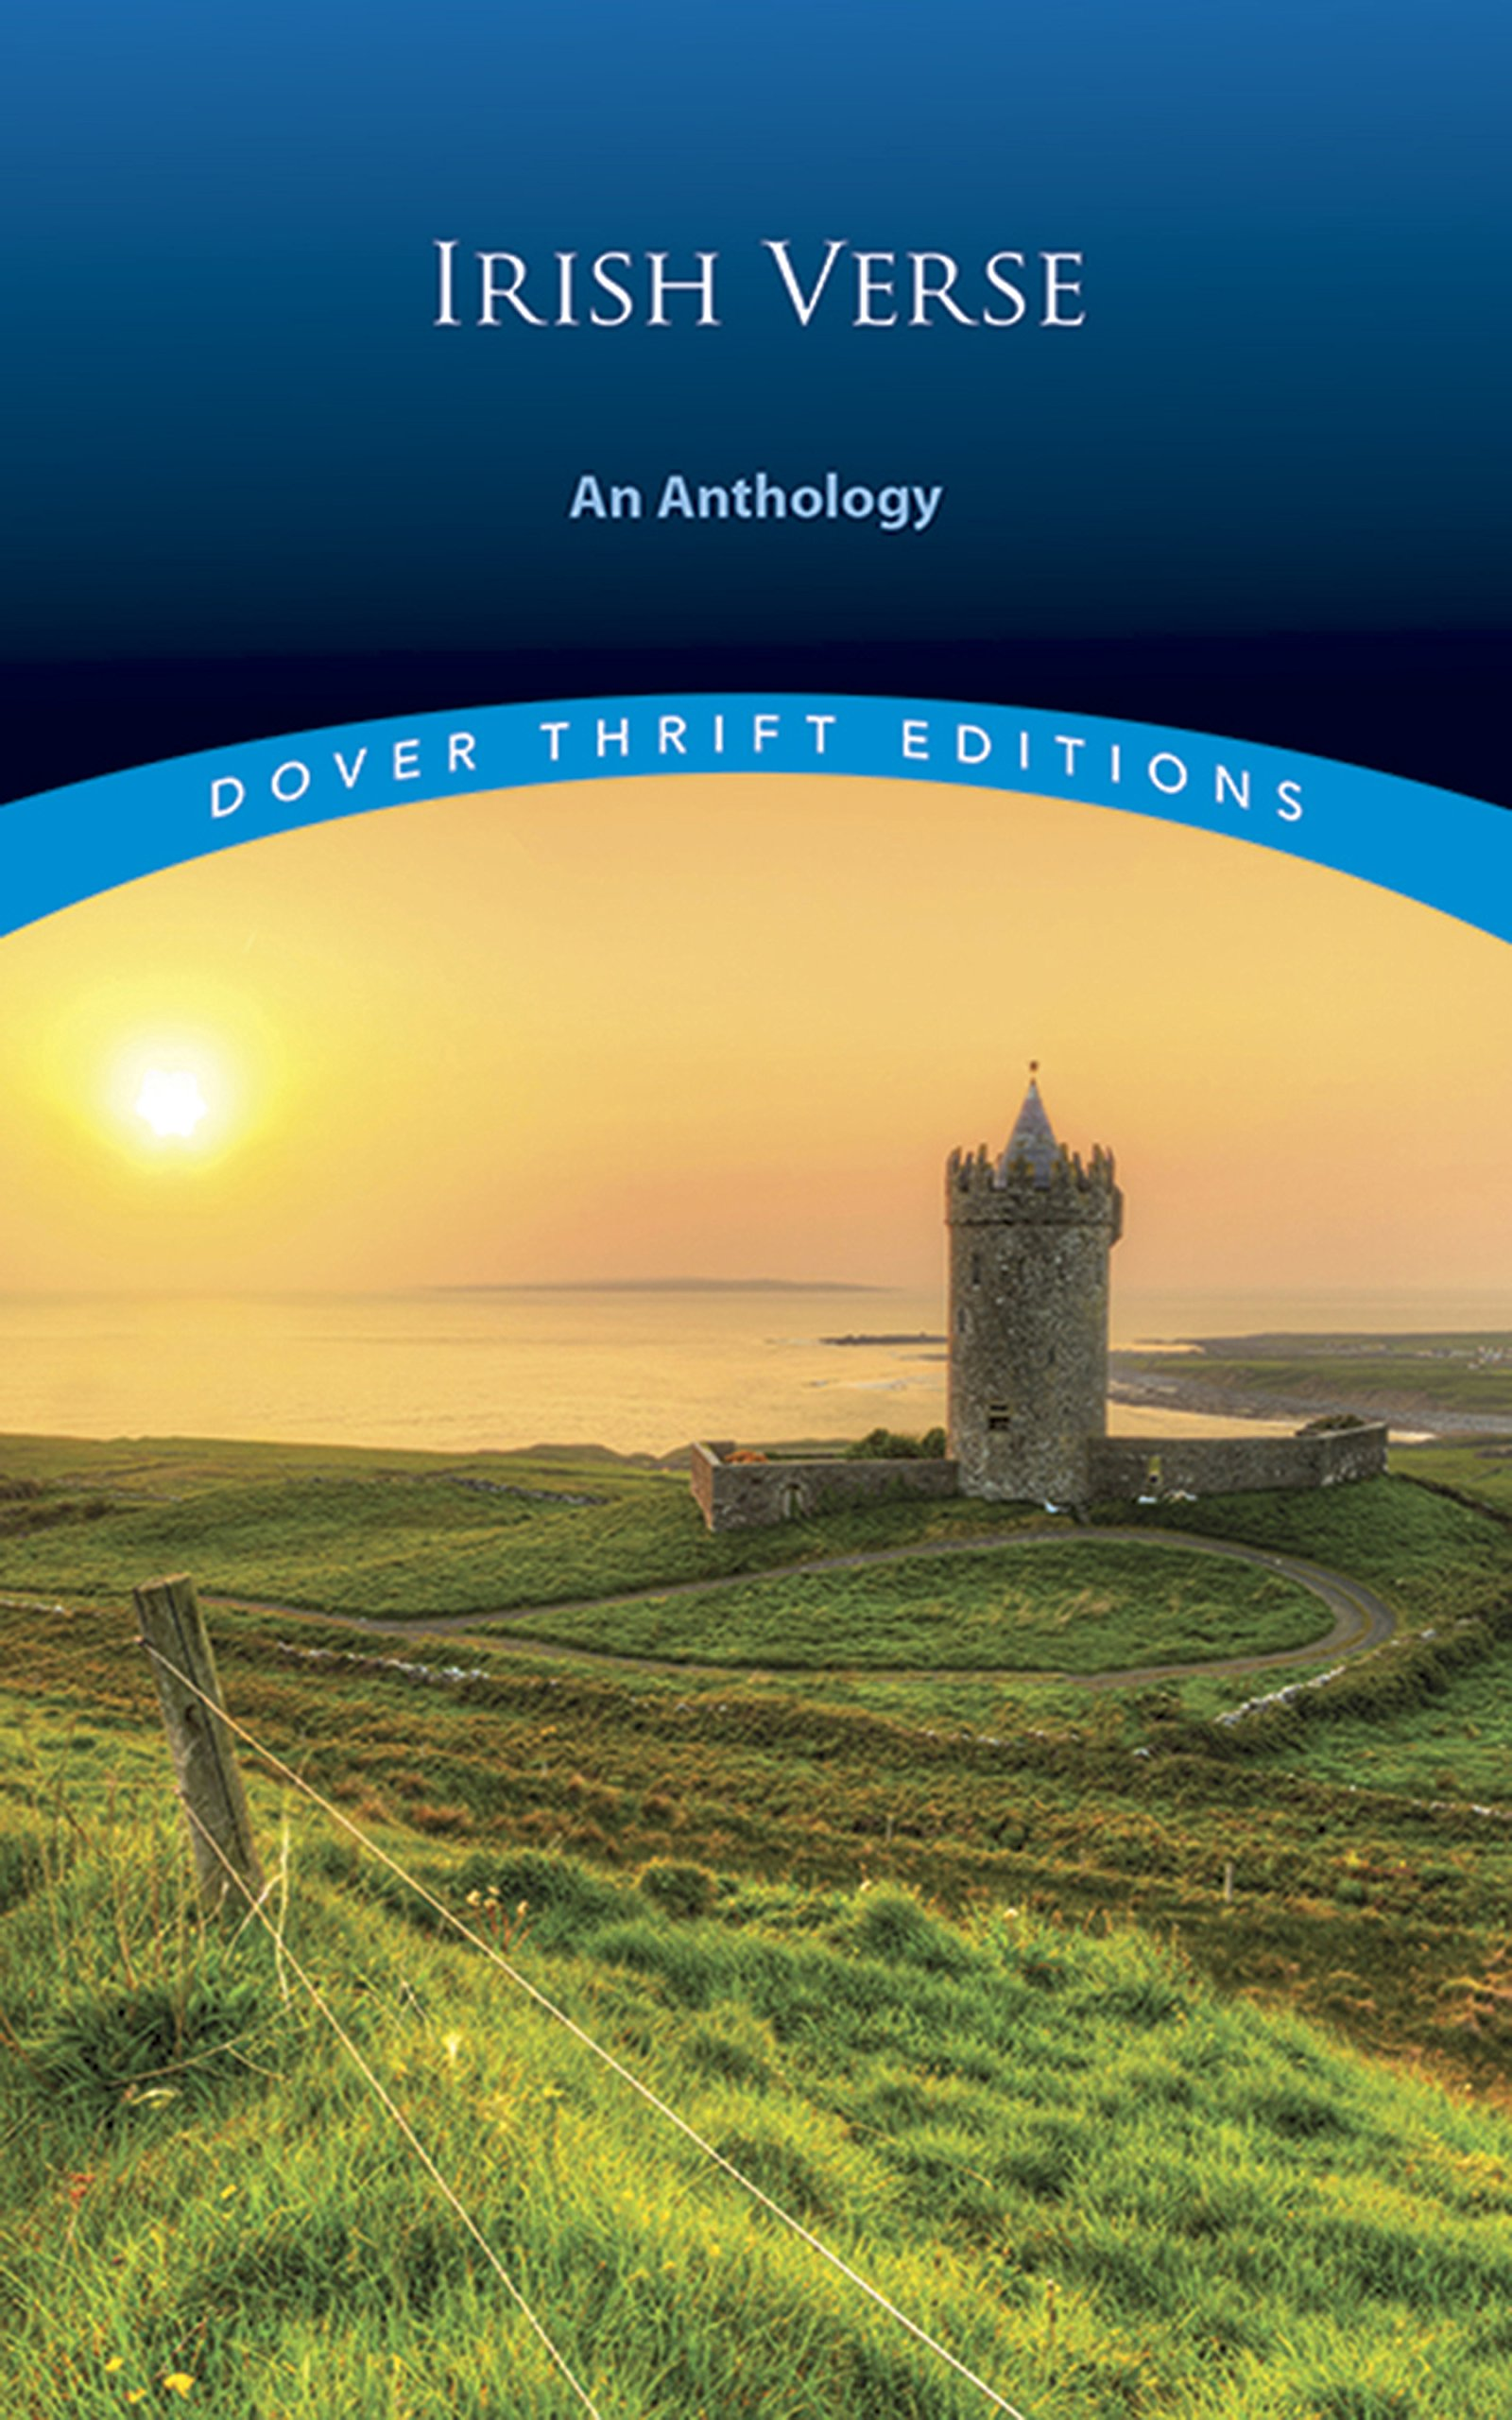 Download Irish Verse: An Anthology (Dover Thrift Editions) pdf